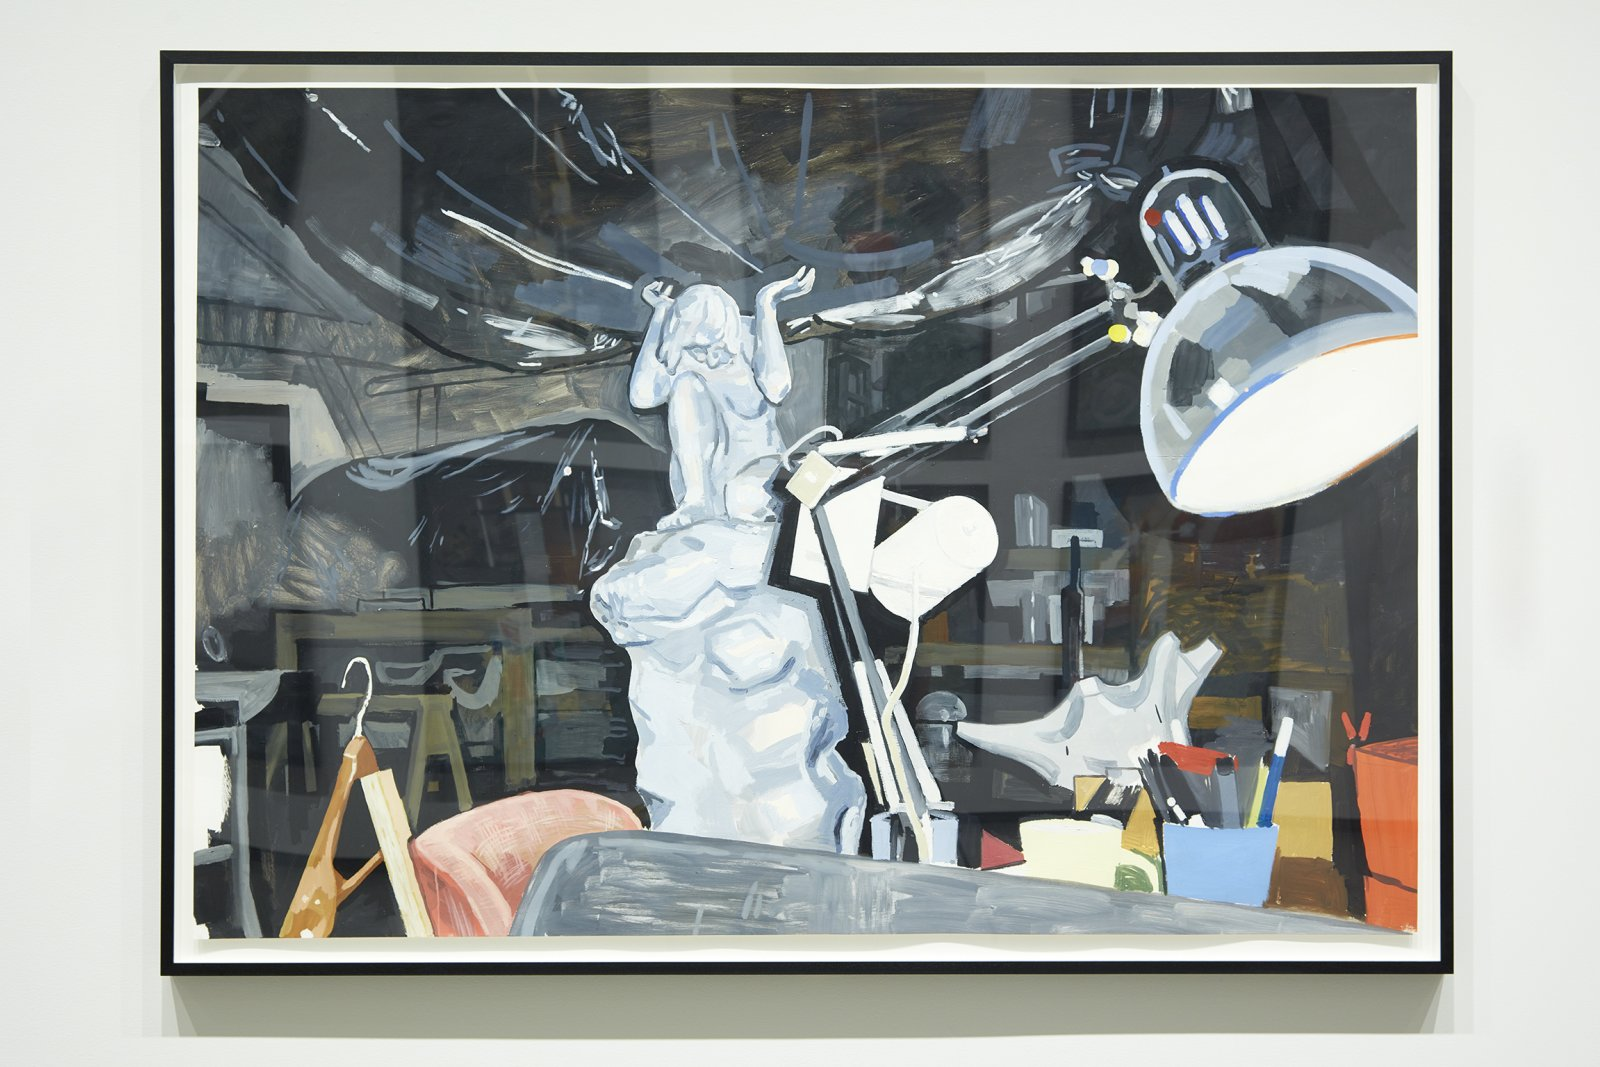 Damian Moppett, Caryatid, Lamp and Sofa in Studio, 2006, oil on paper, 58 x 81 in. (147 x 206 cm). Installation view, Every Story Has Two Sides, Art Gallery of Alberta, Edmonton, 2016 by Damian Moppett